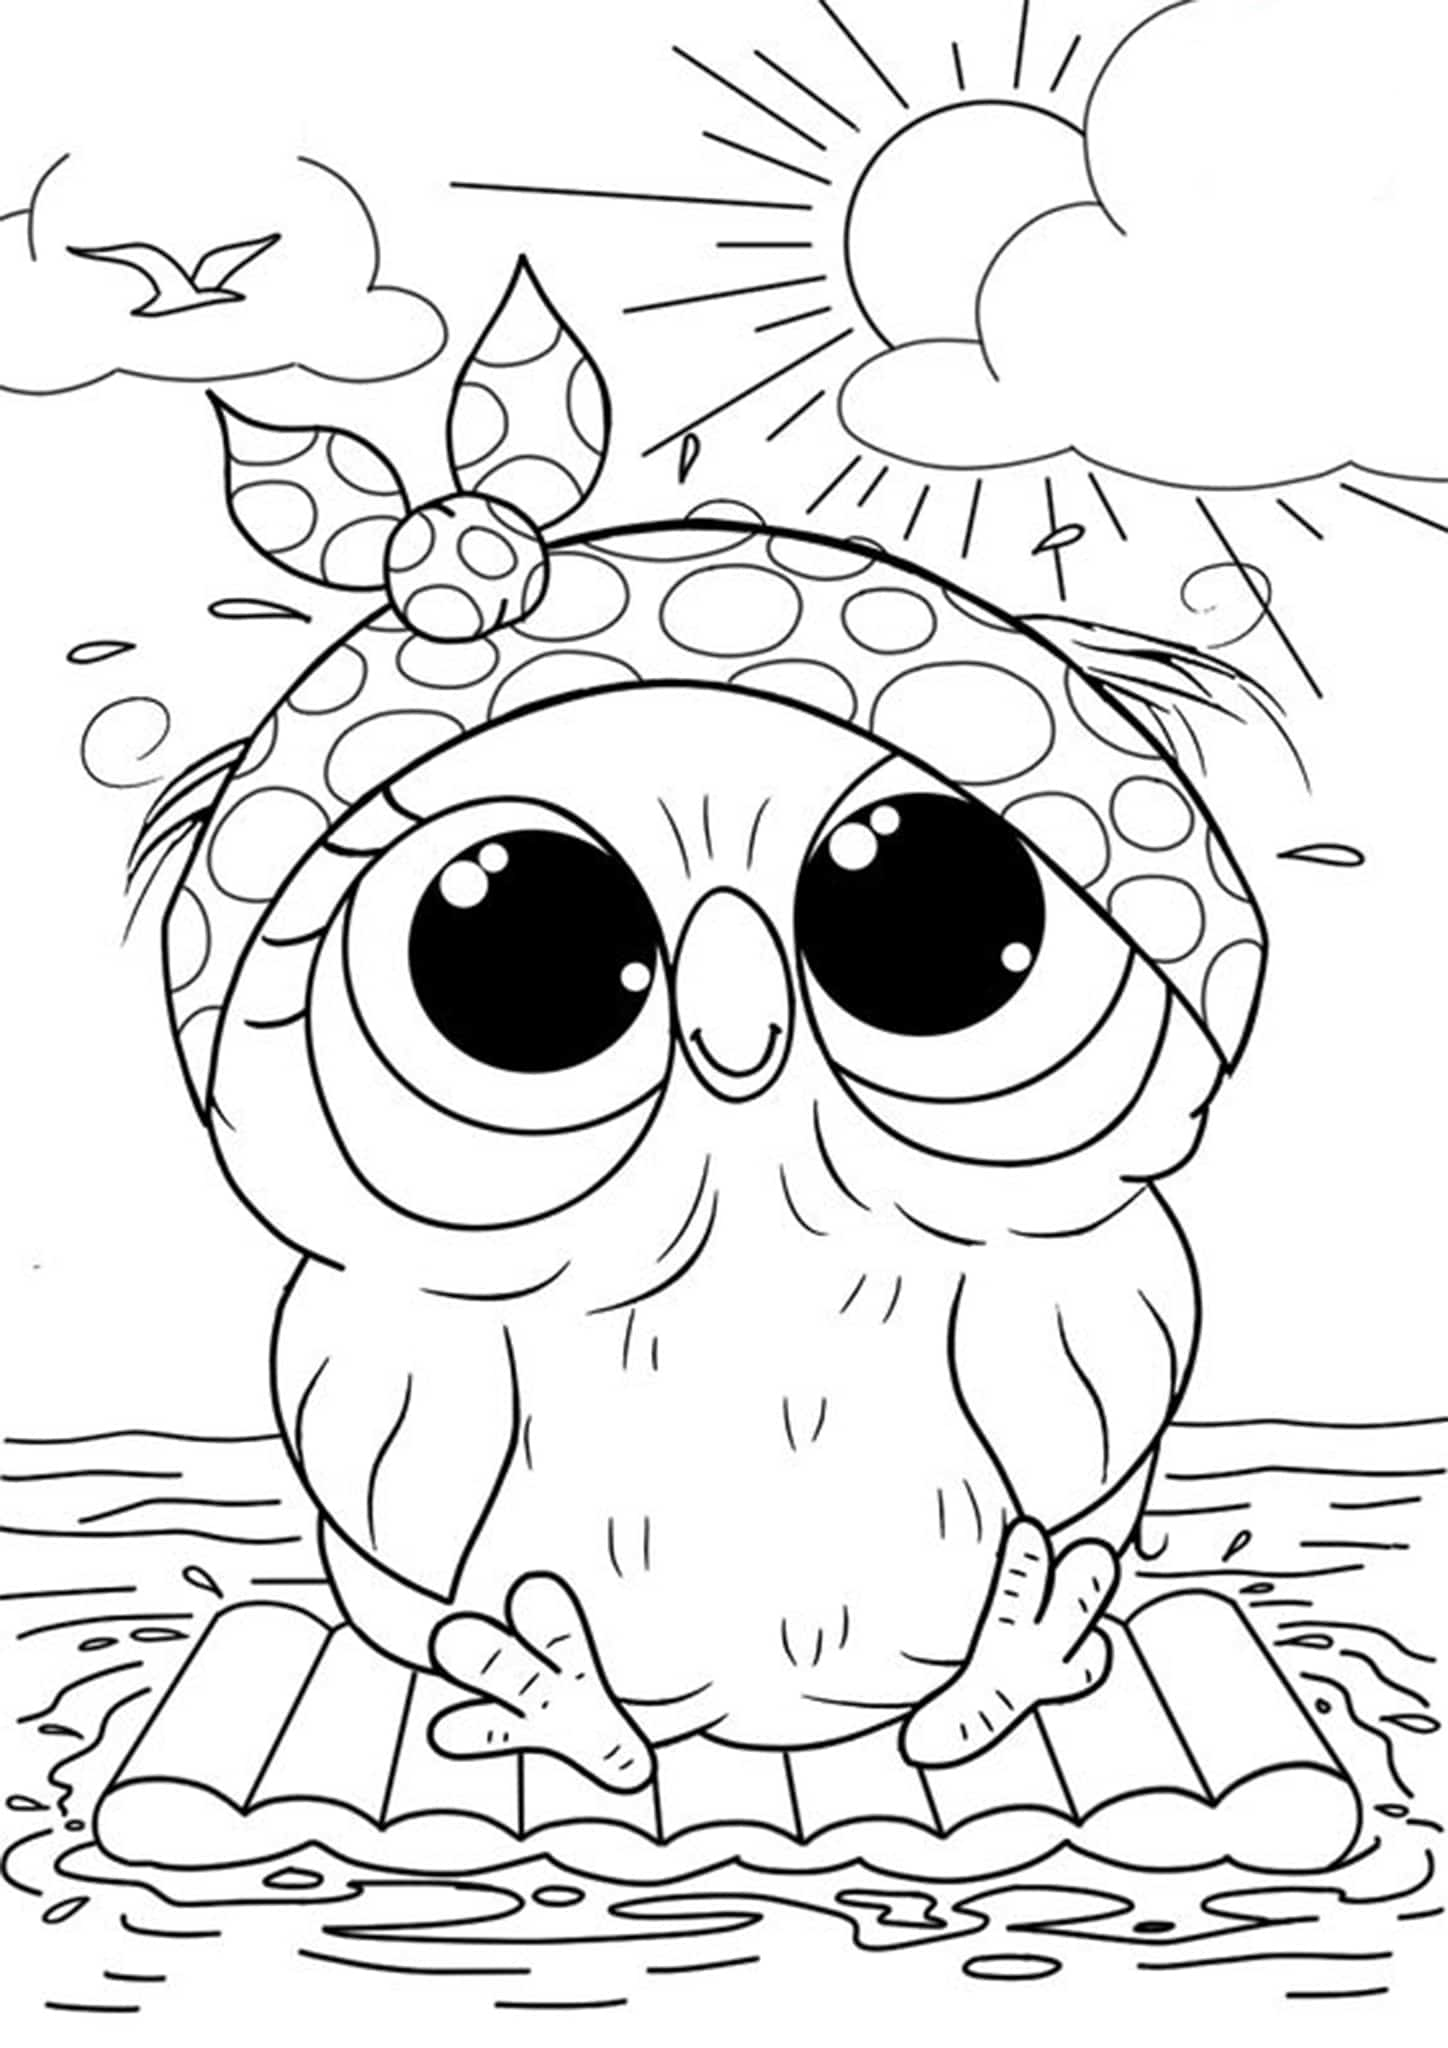 owl picture to color cute owl coloring page free printable coloring pages to owl color picture